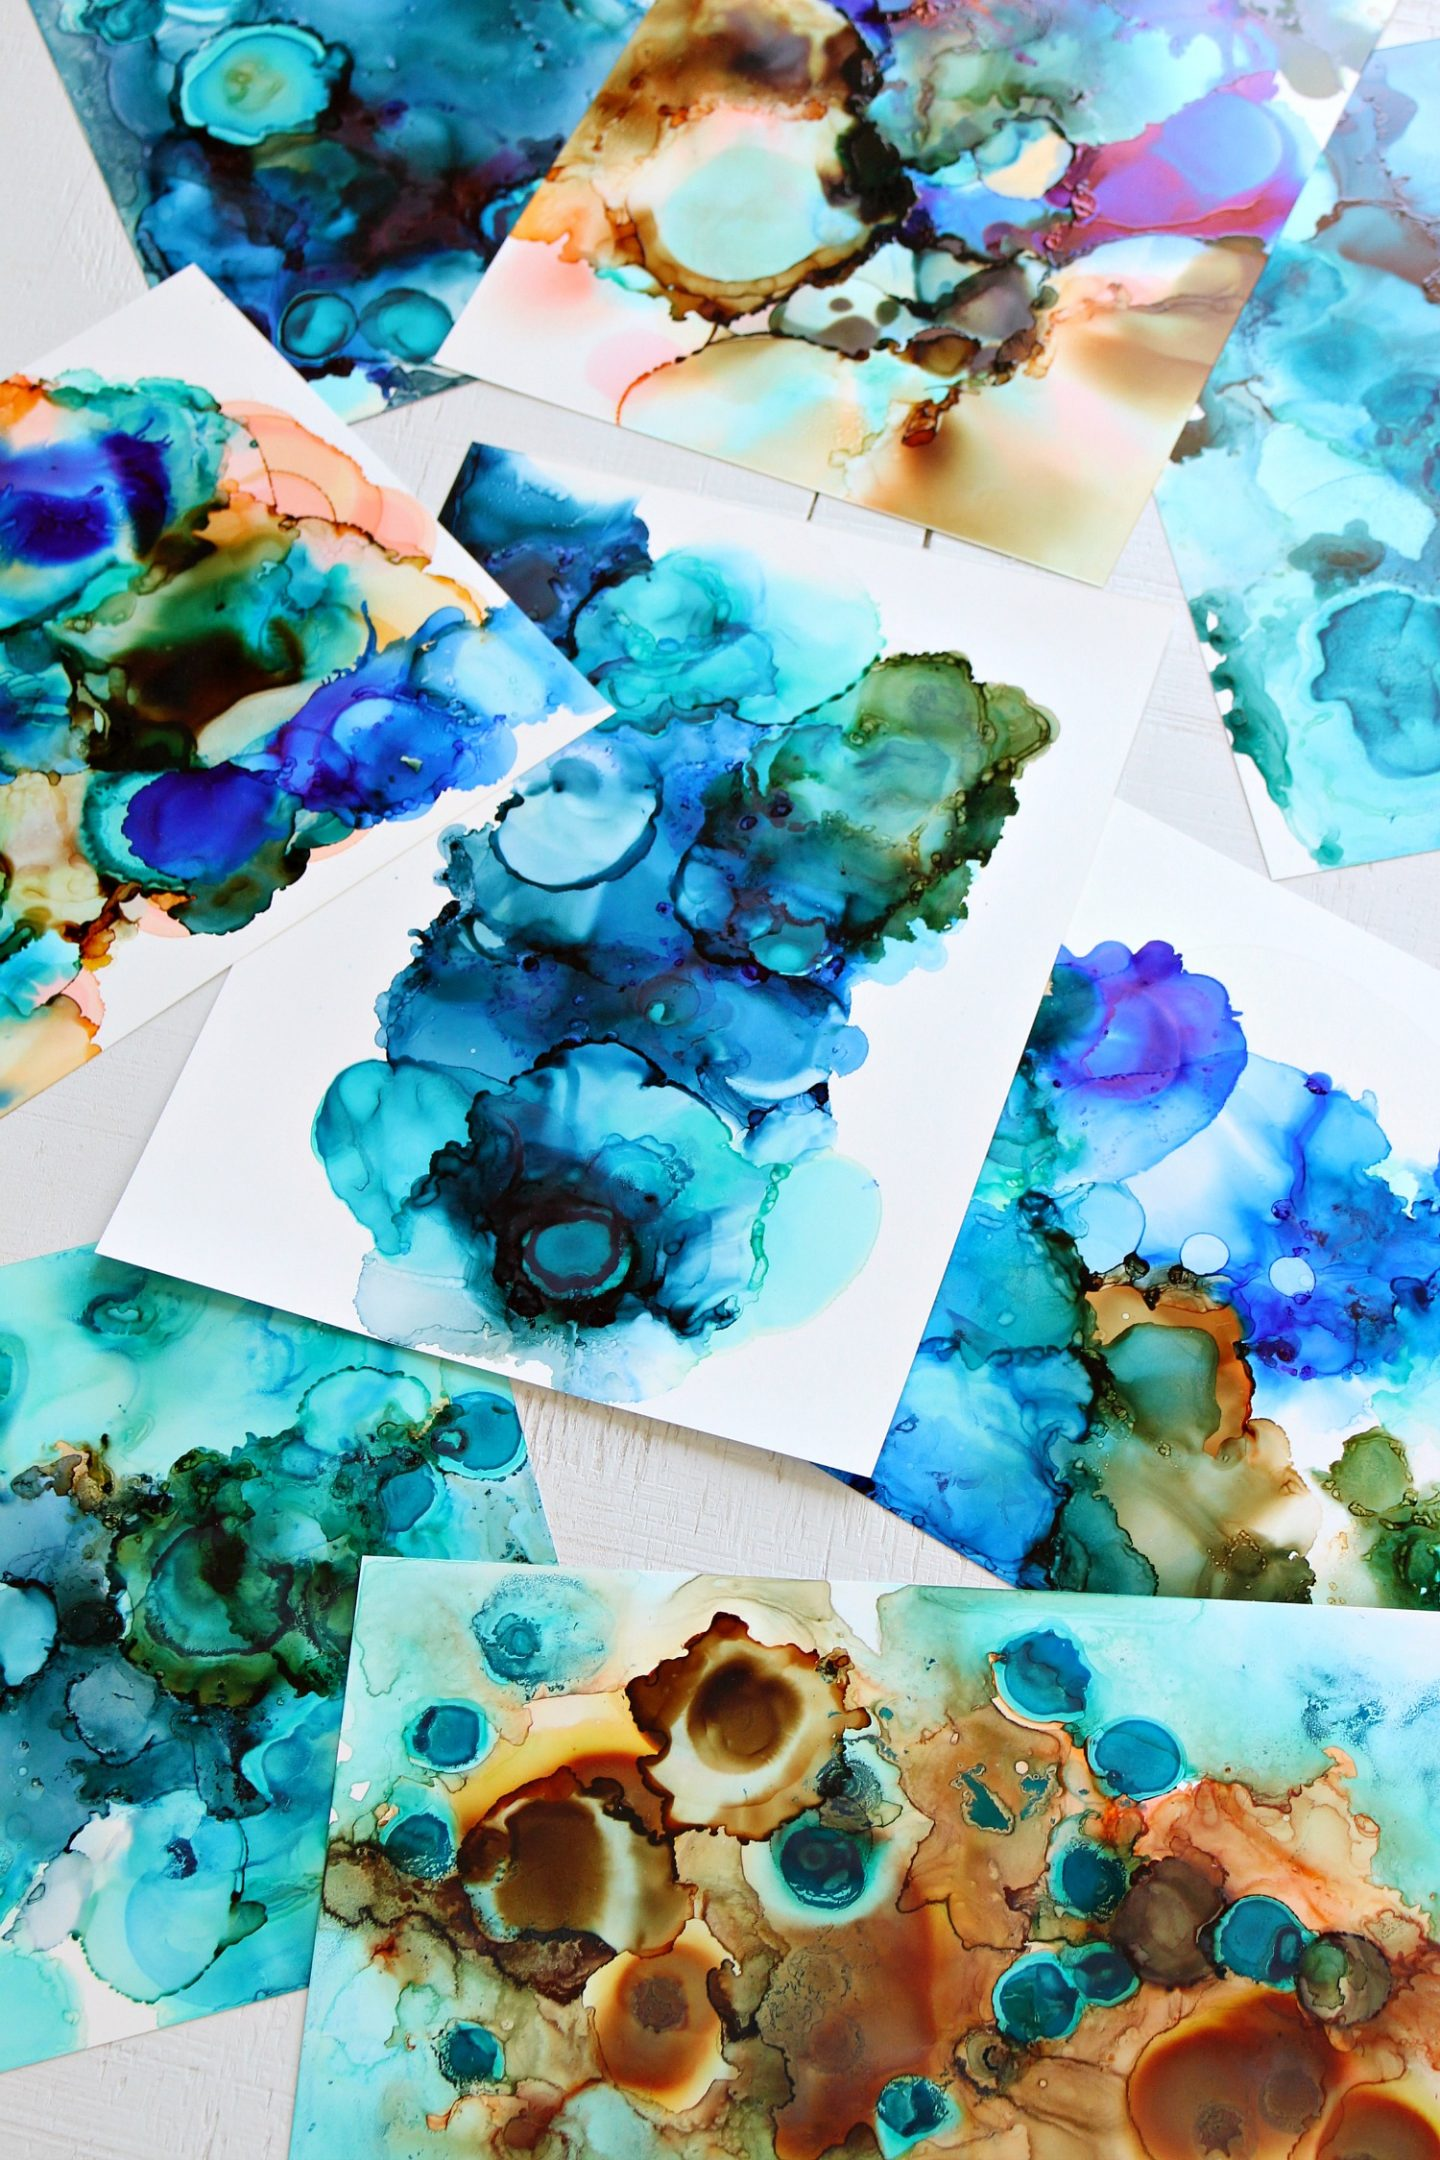 Learn How to Make DIY Alcohol Ink Artwork